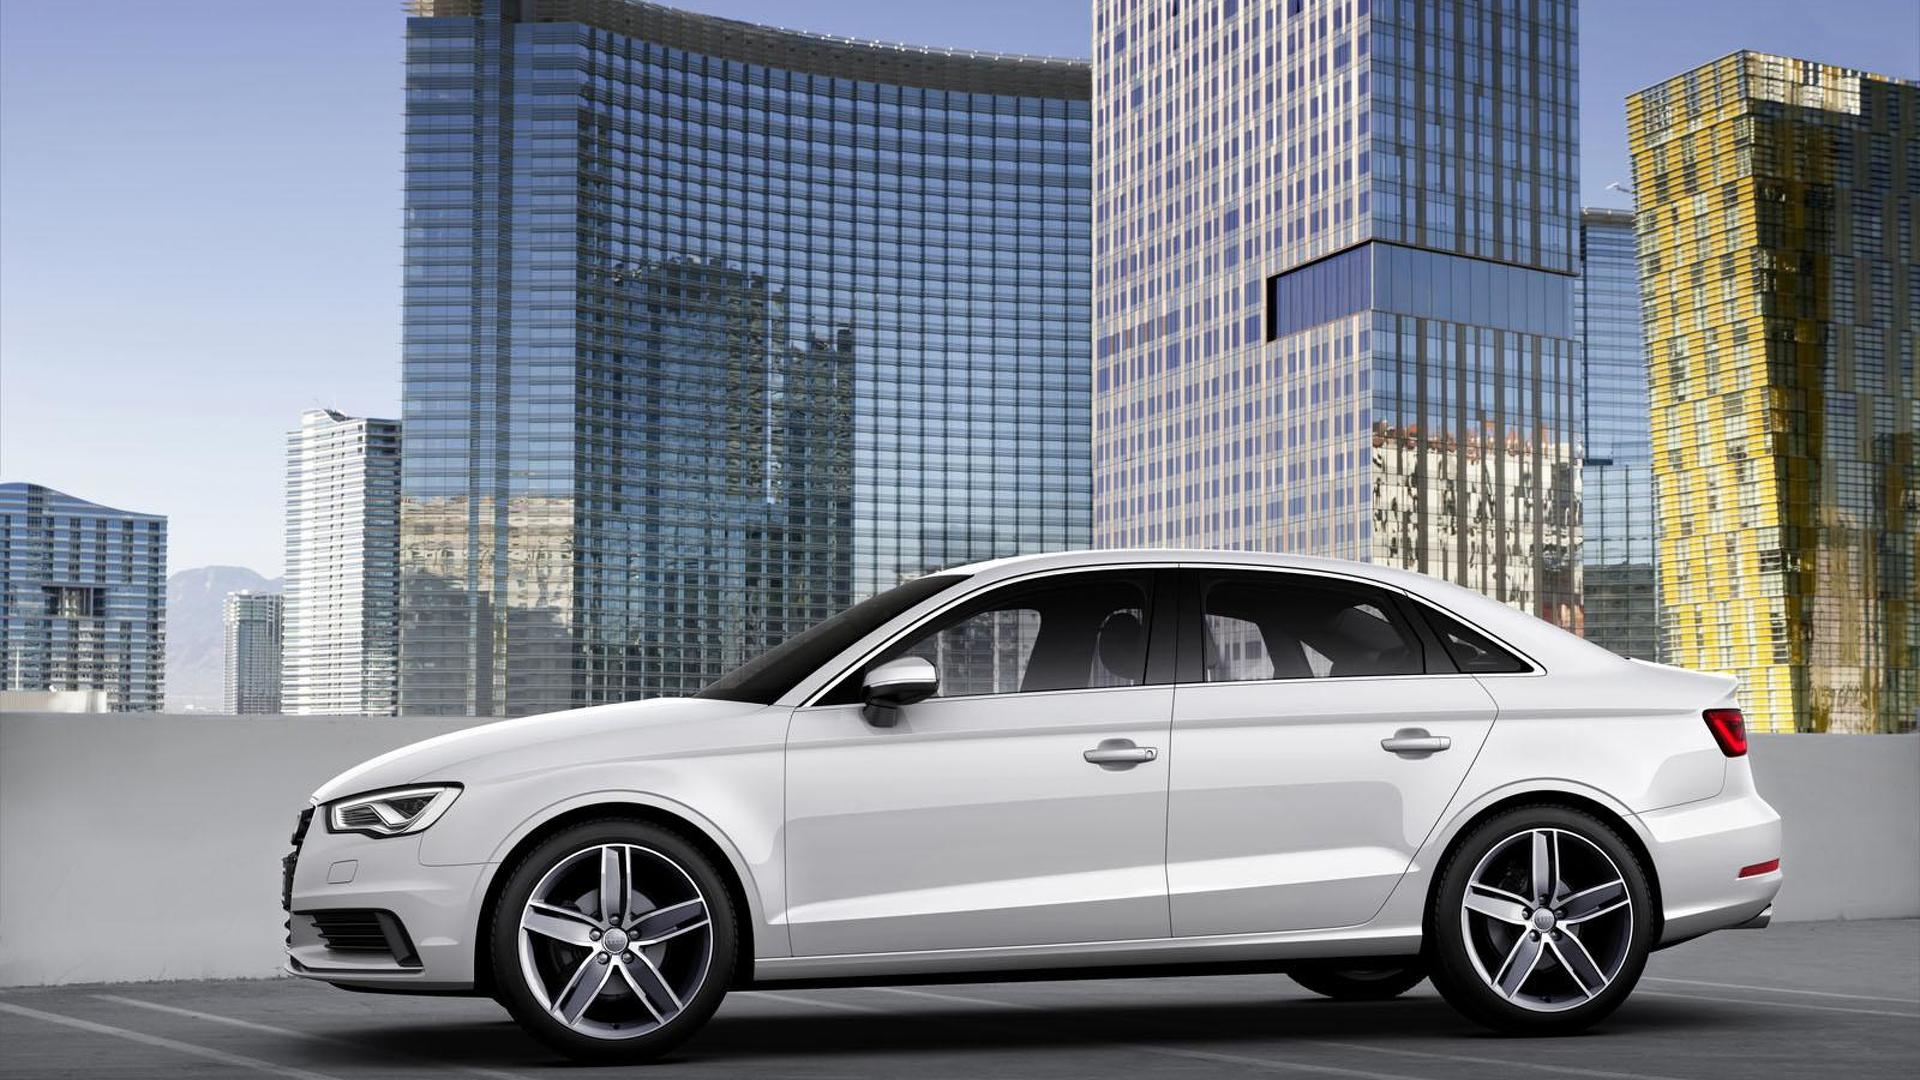 diesel technology reviews audi images india newcars tdi price mileage autoportal in sd com